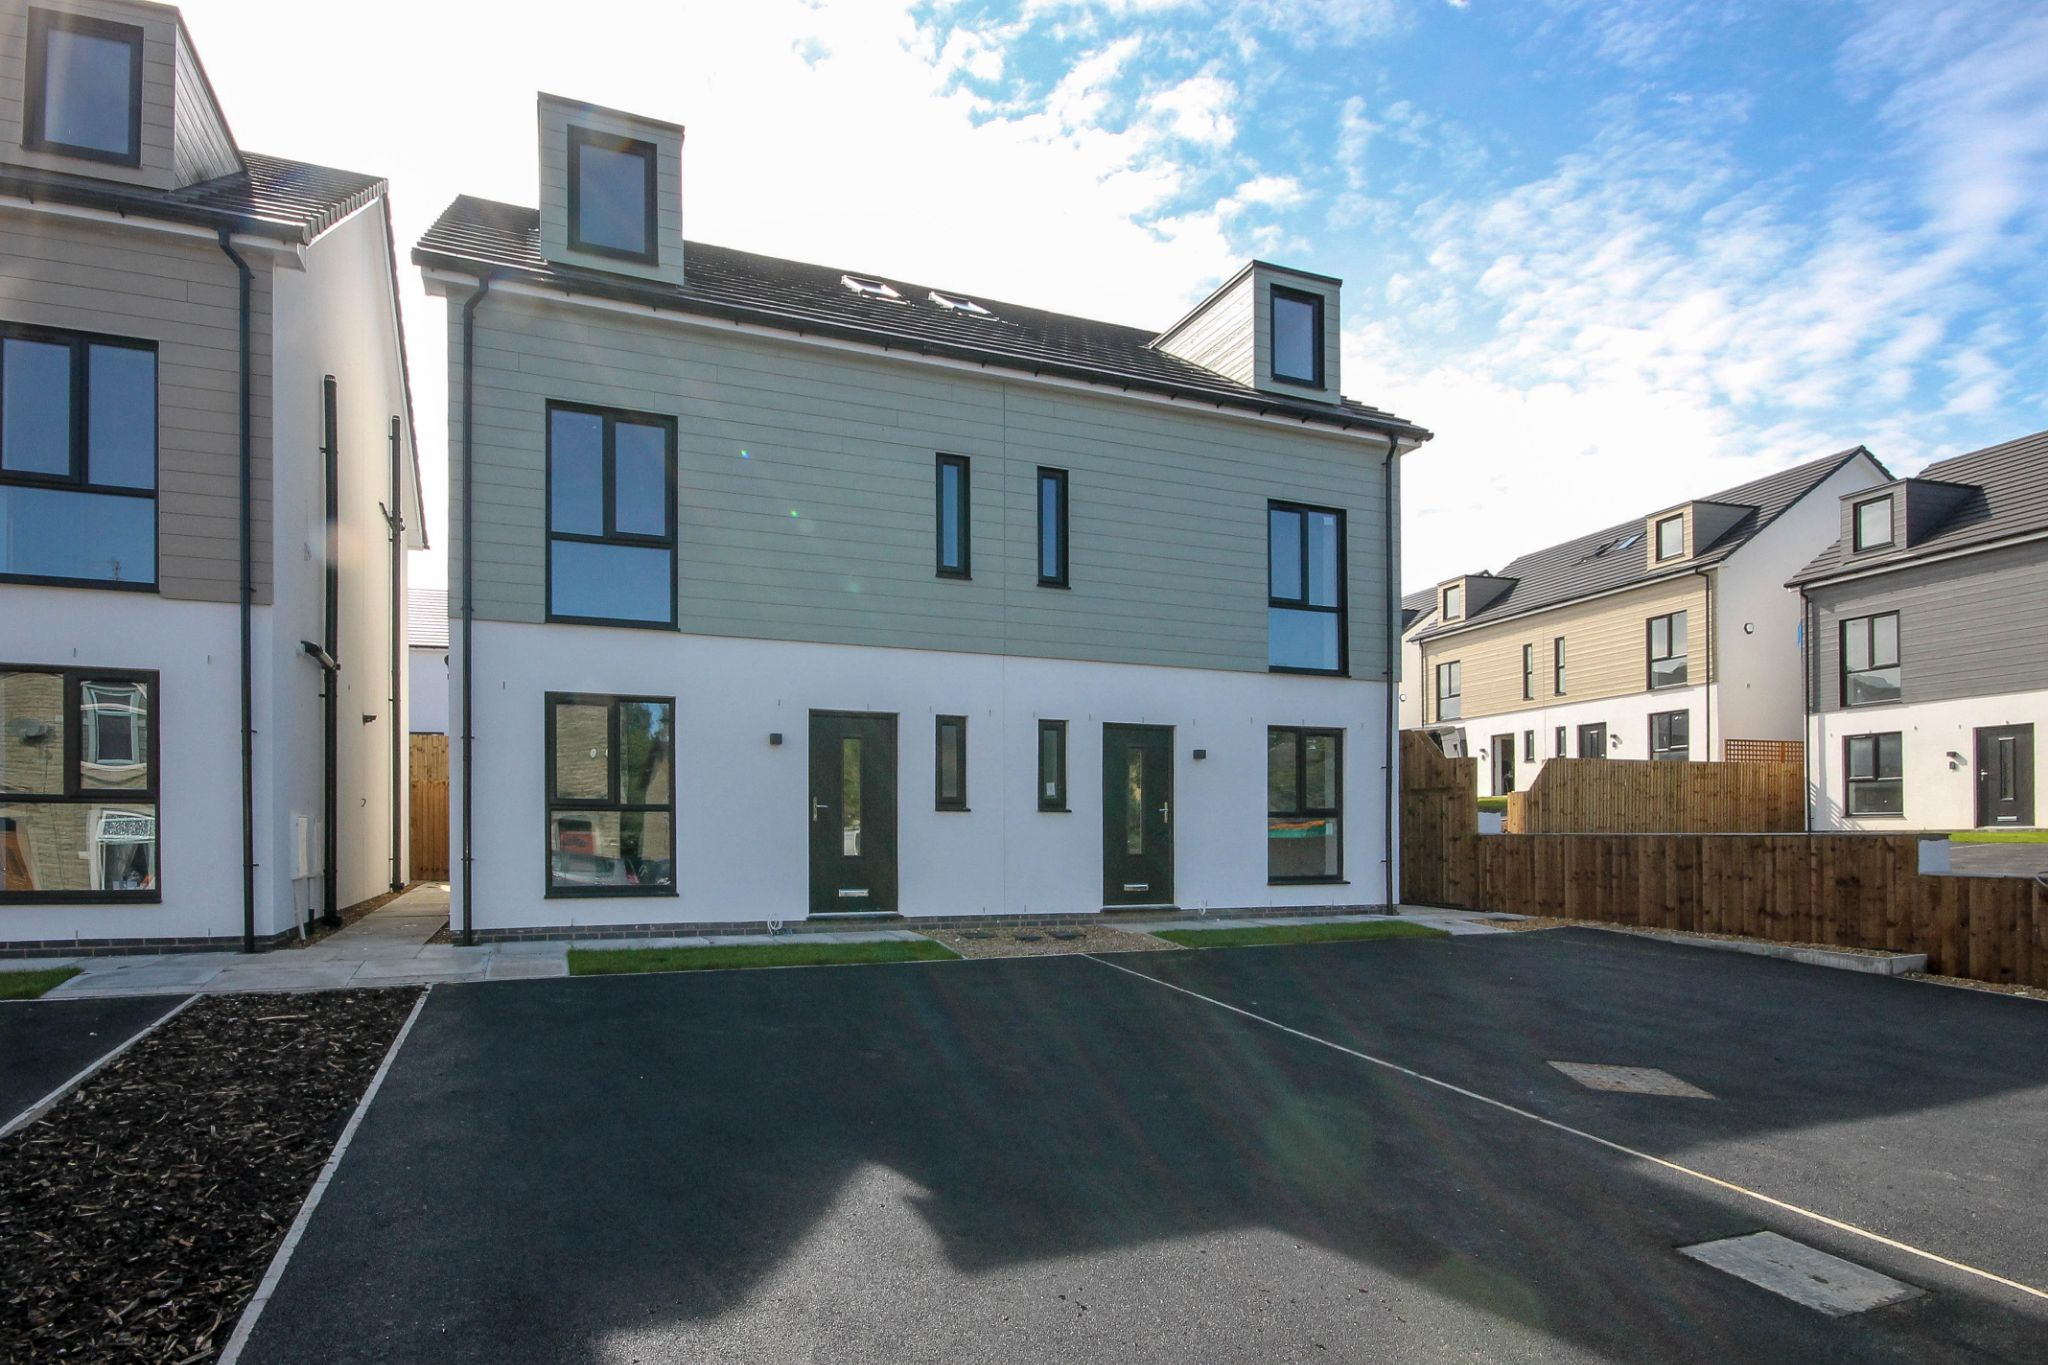 Plot 9 21 Balmoral Road, Darwen, BB3